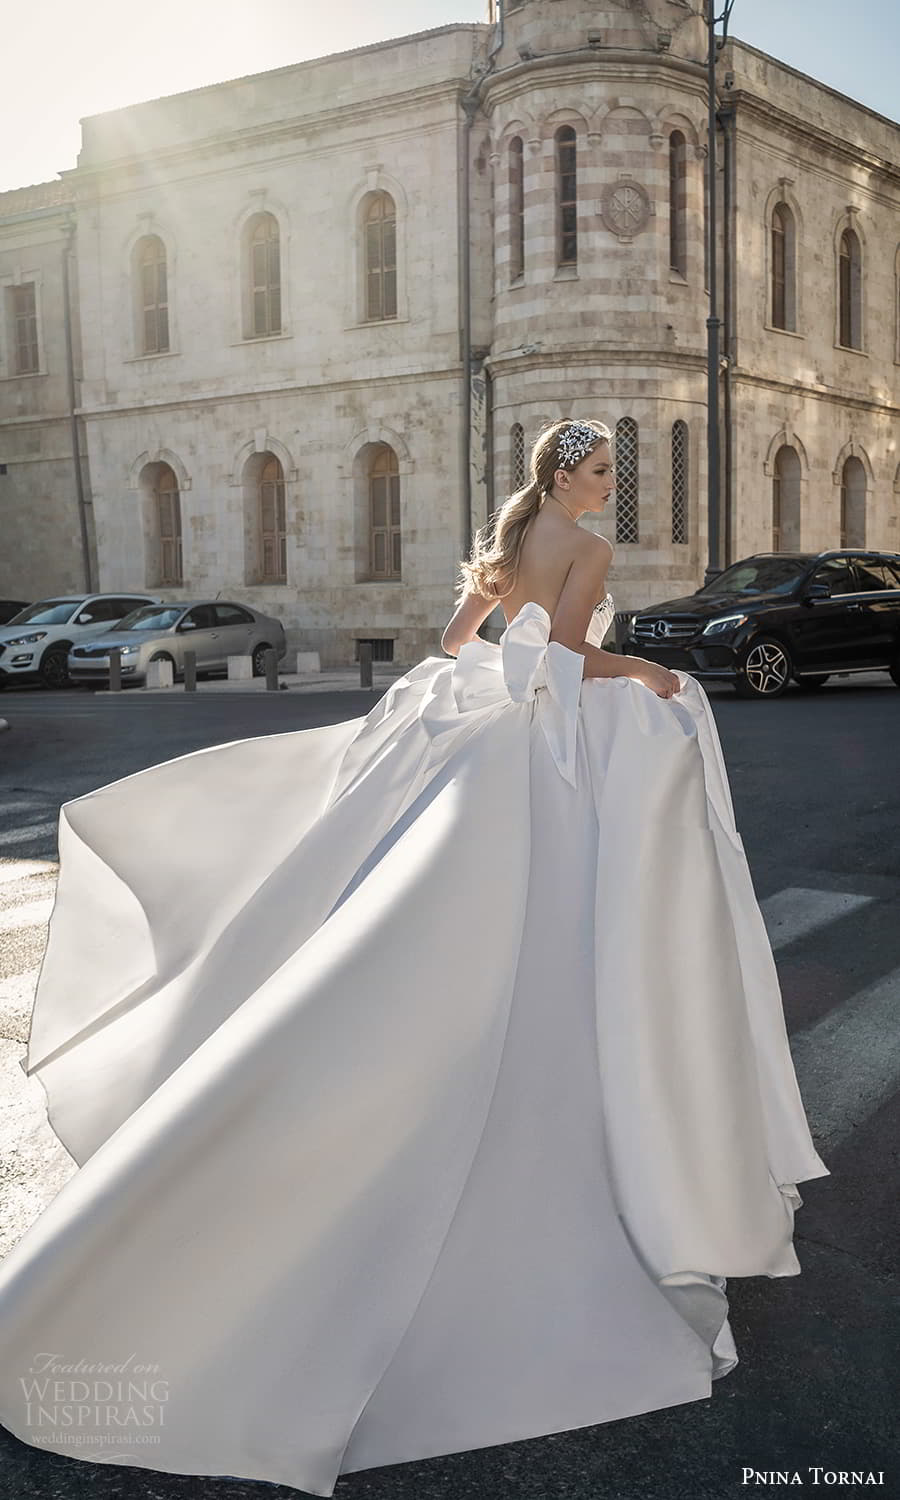 pnina tornai 2022 love bridal strapless embellished sweetheart neckline ruched bodice minimalist a line ball gown wedding dress chapel train bow back (3) bv